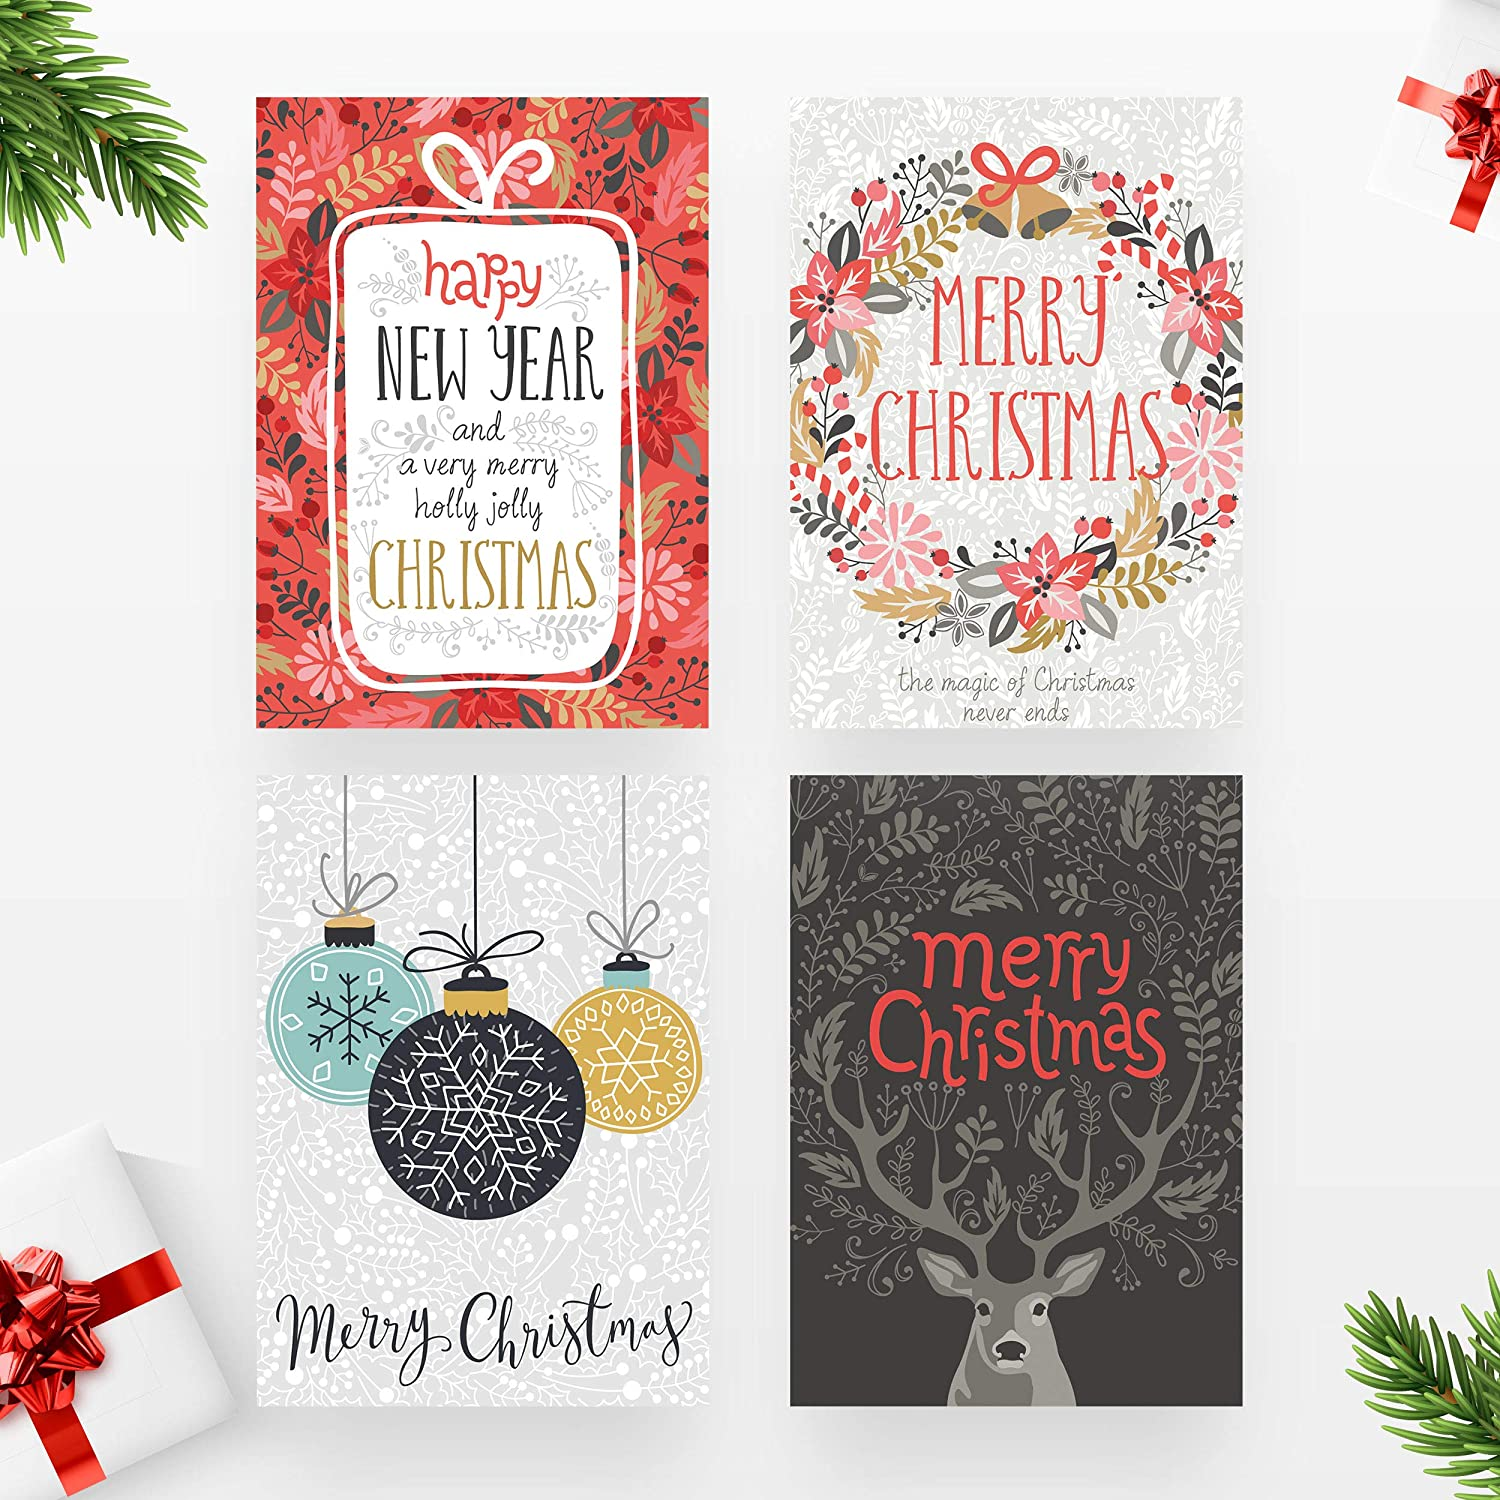 20 Merry Christmas Cards Series 2 by Kyobo Creations |10 Multipack ...